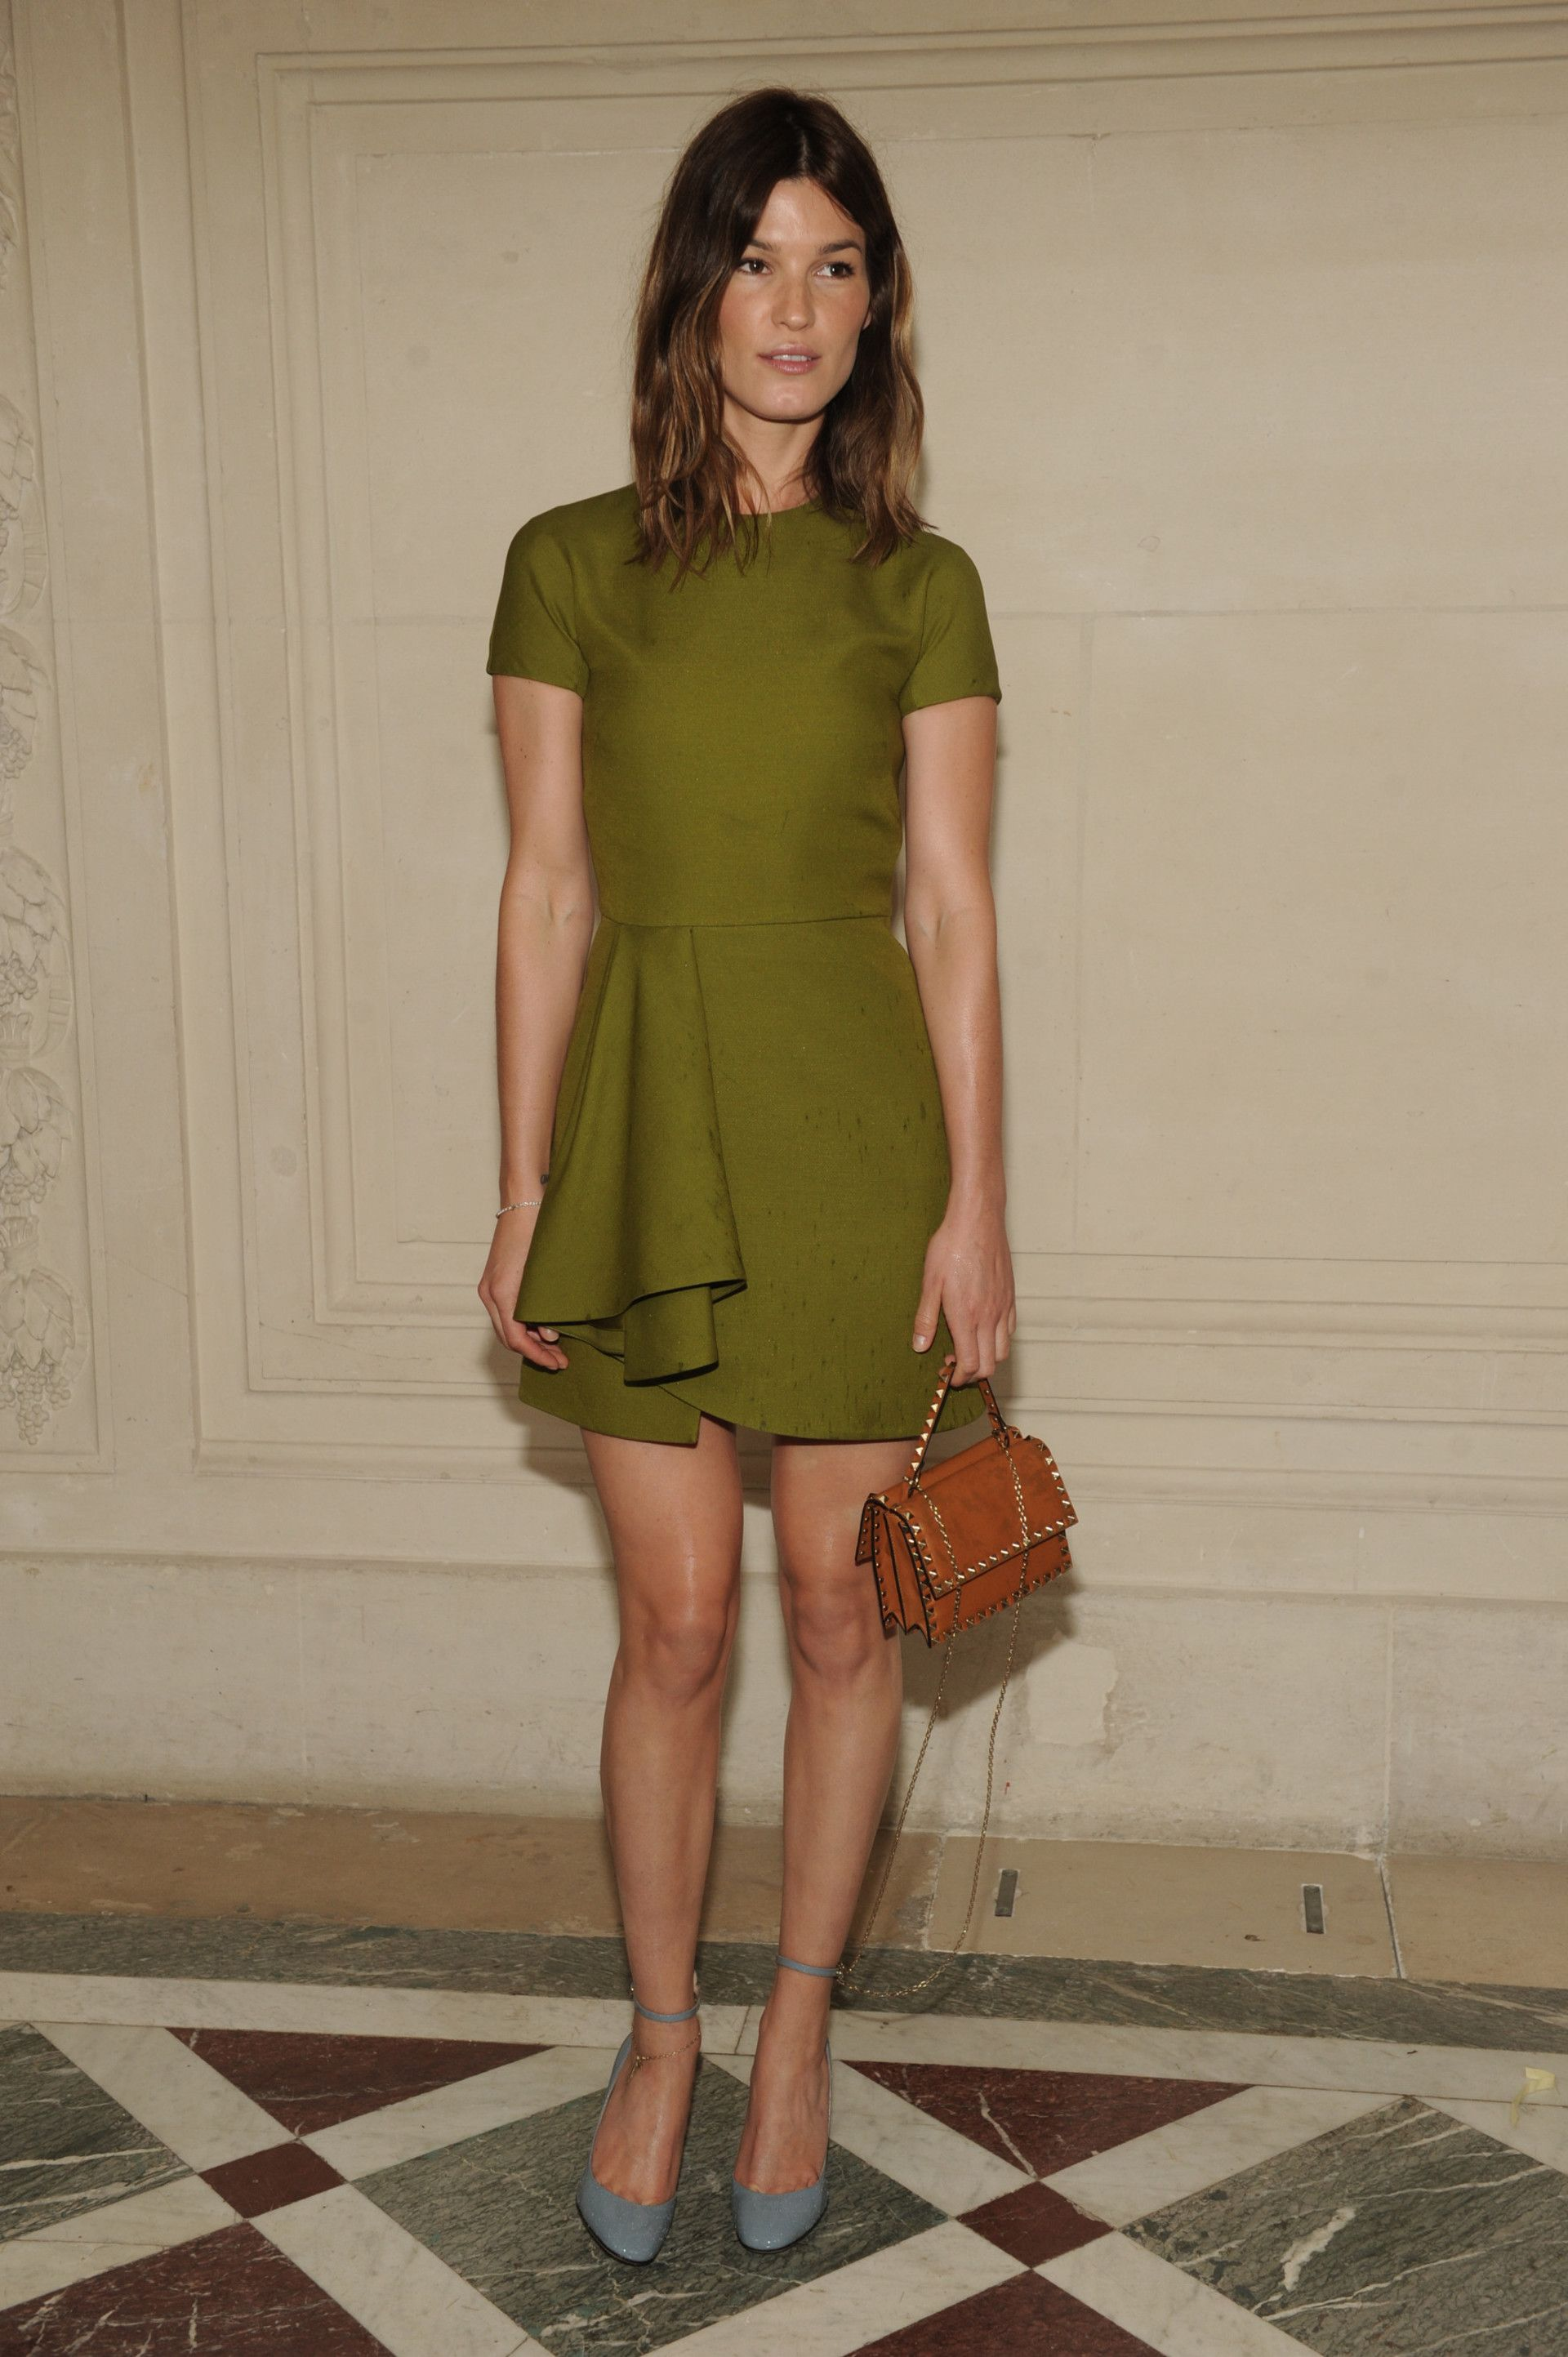 Hanneli Mustaparta at the Haute Couture Fall/Winter 2014-15 show in Paris, the 9th of July 2014